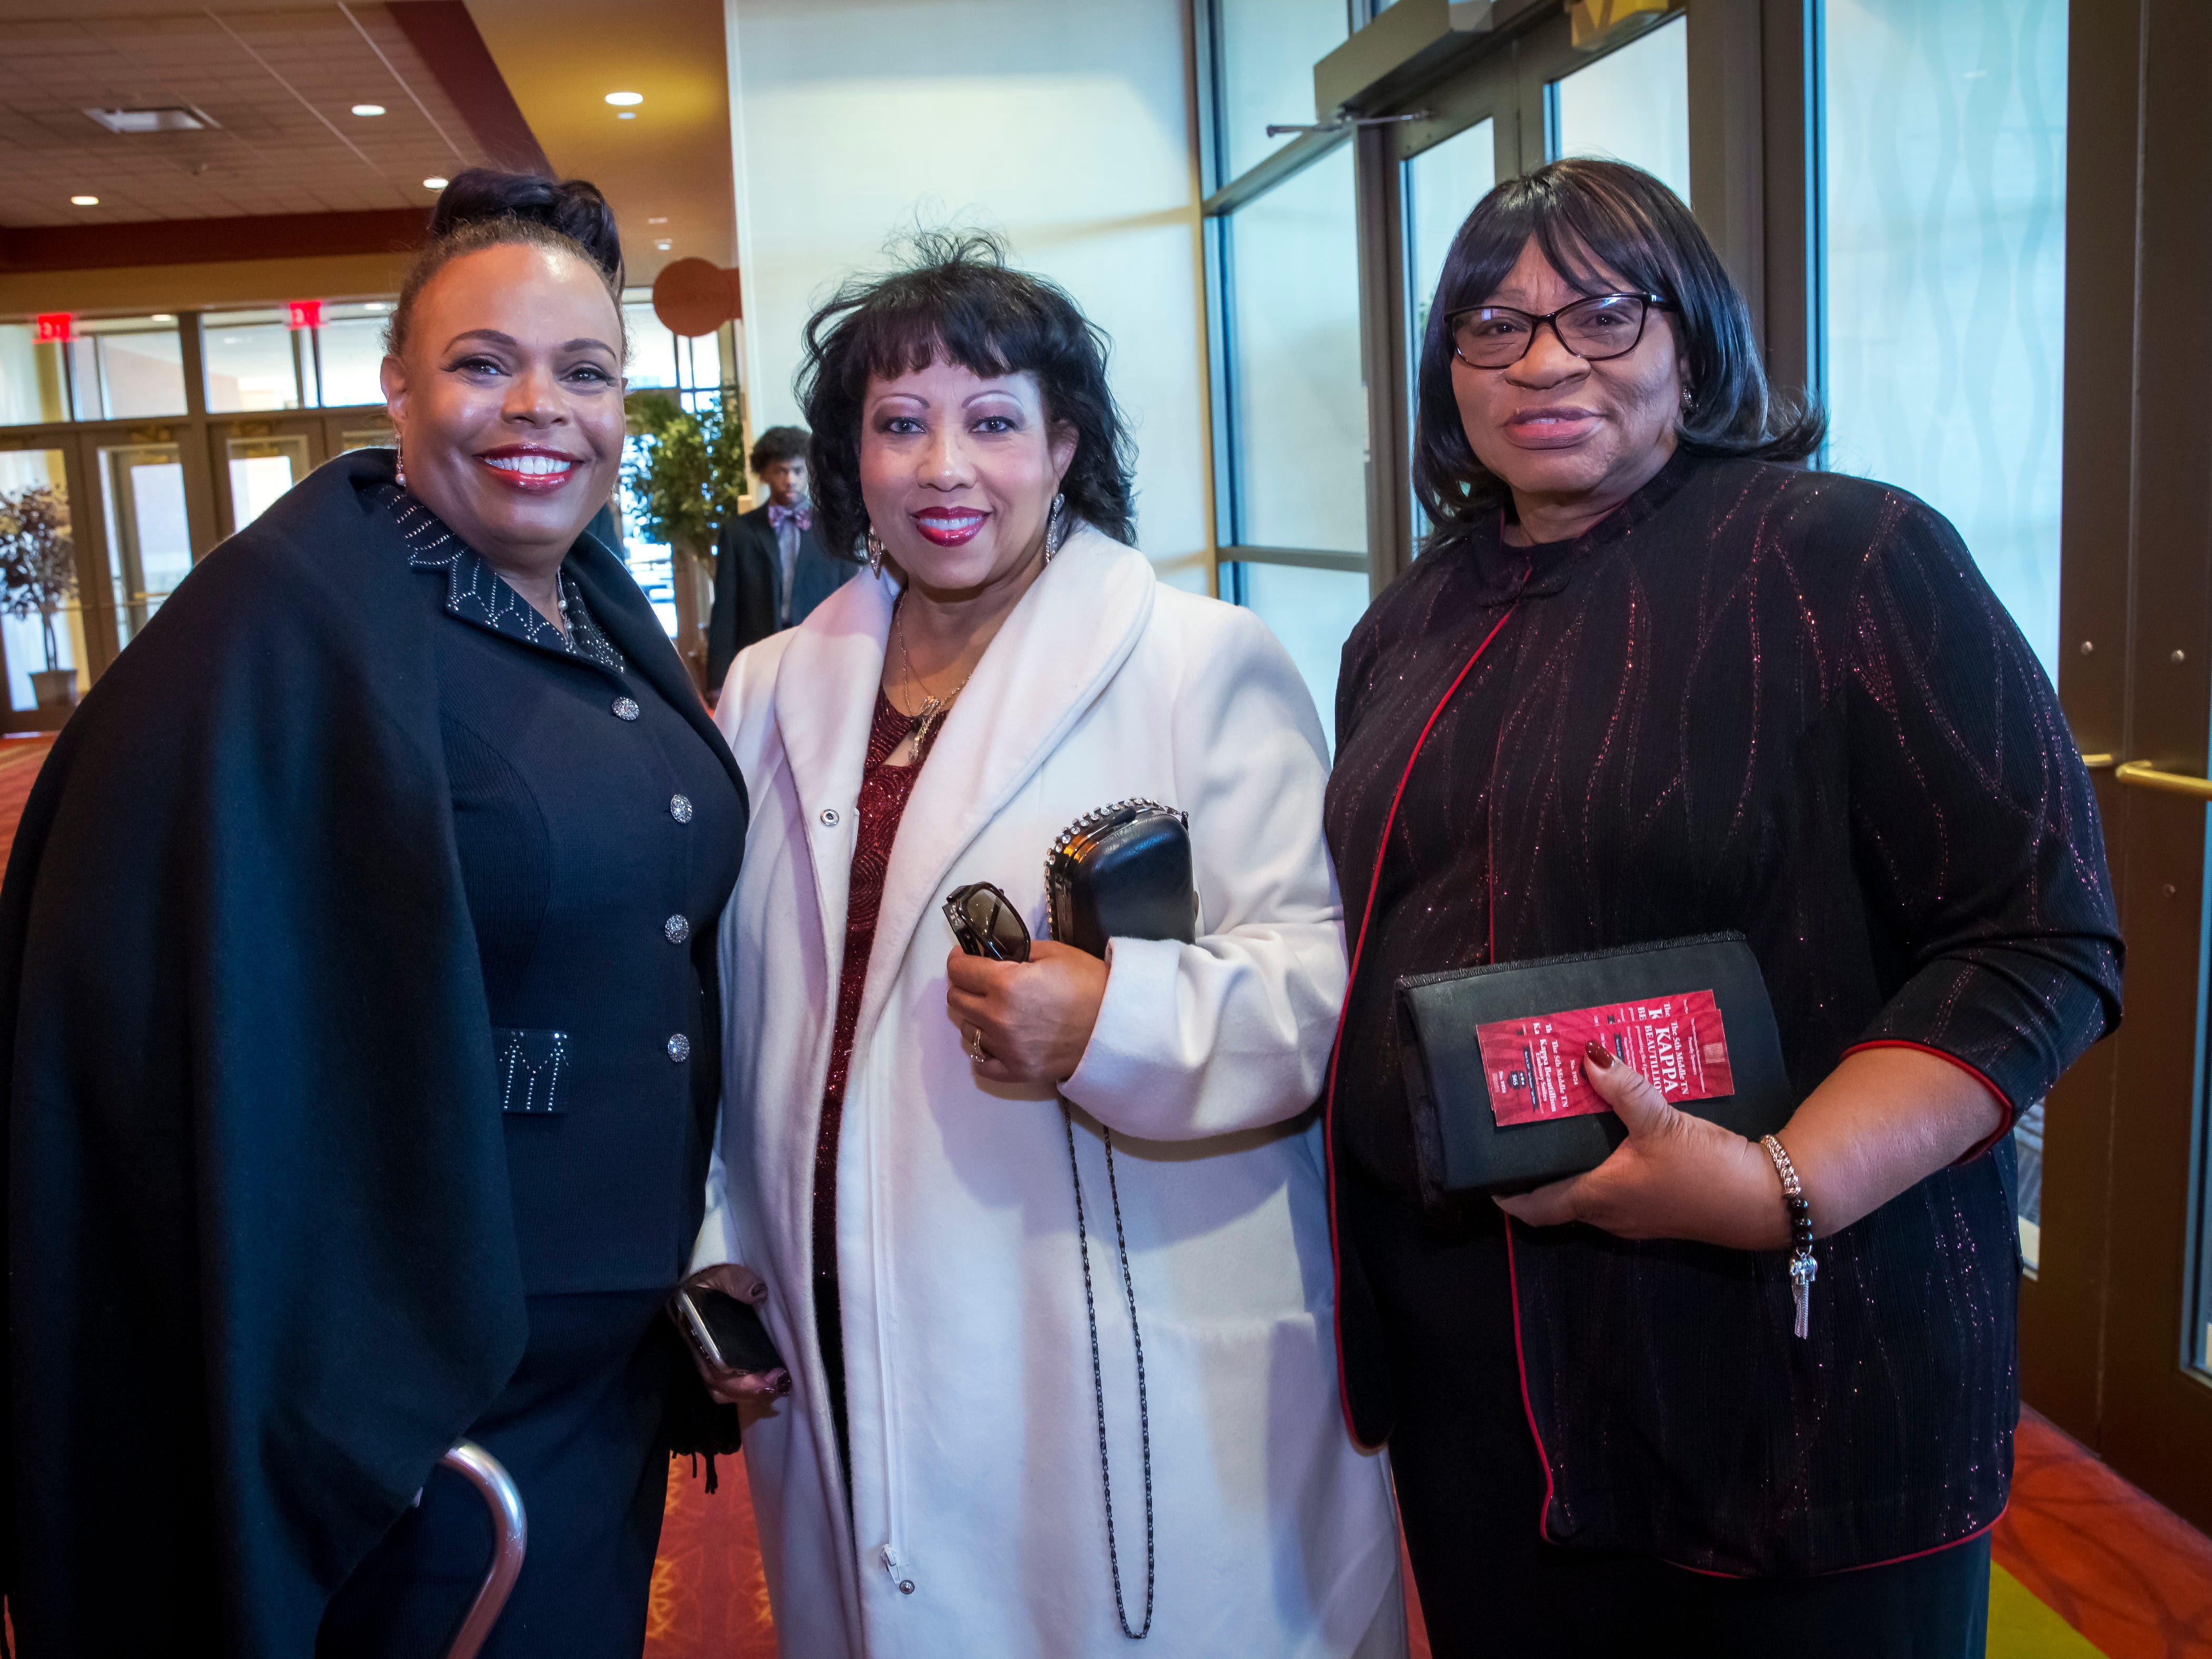 Sonja Brown Decoatch, Beryl Harris and Mary Wade at the Murfreesboro Alumni Chapter of Kappa Alpha Psi Fraternity Beautillion held at Embassy Suites Murfreesboro on Saturday, March 16, 2019.